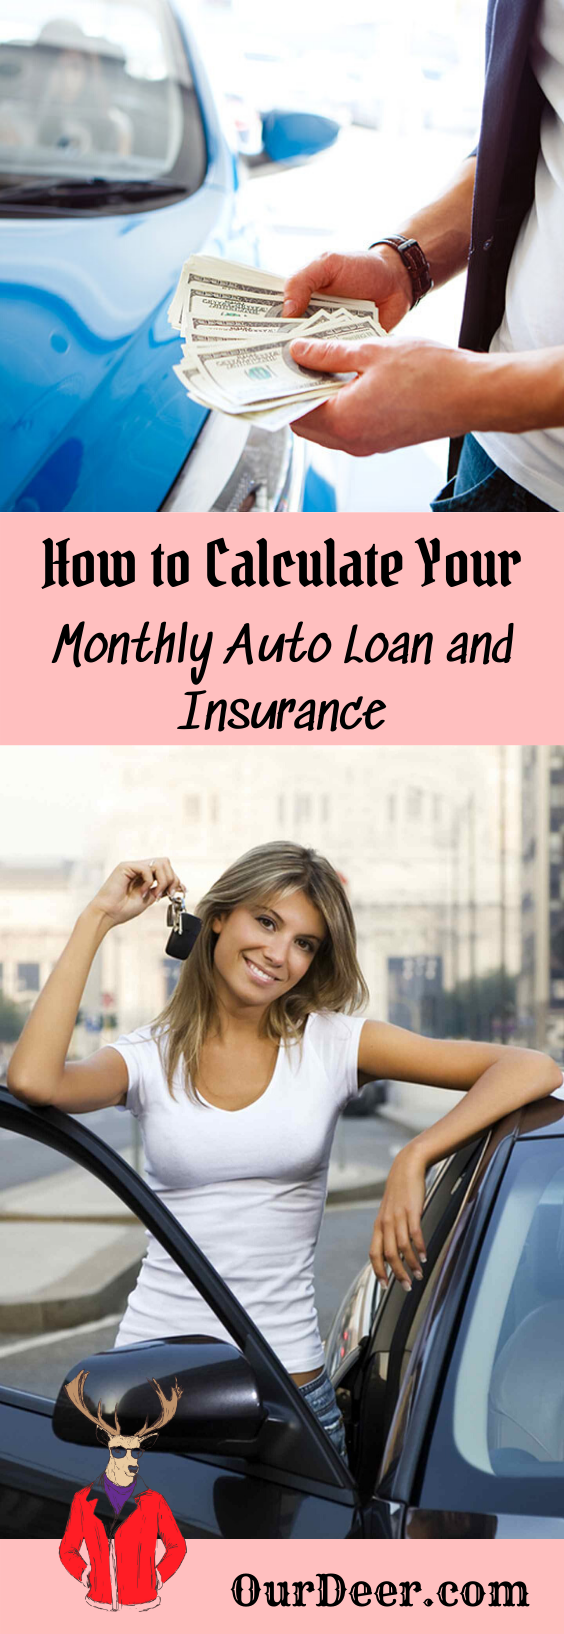 How to Calculate Your Monthly Auto Loan and Insurance